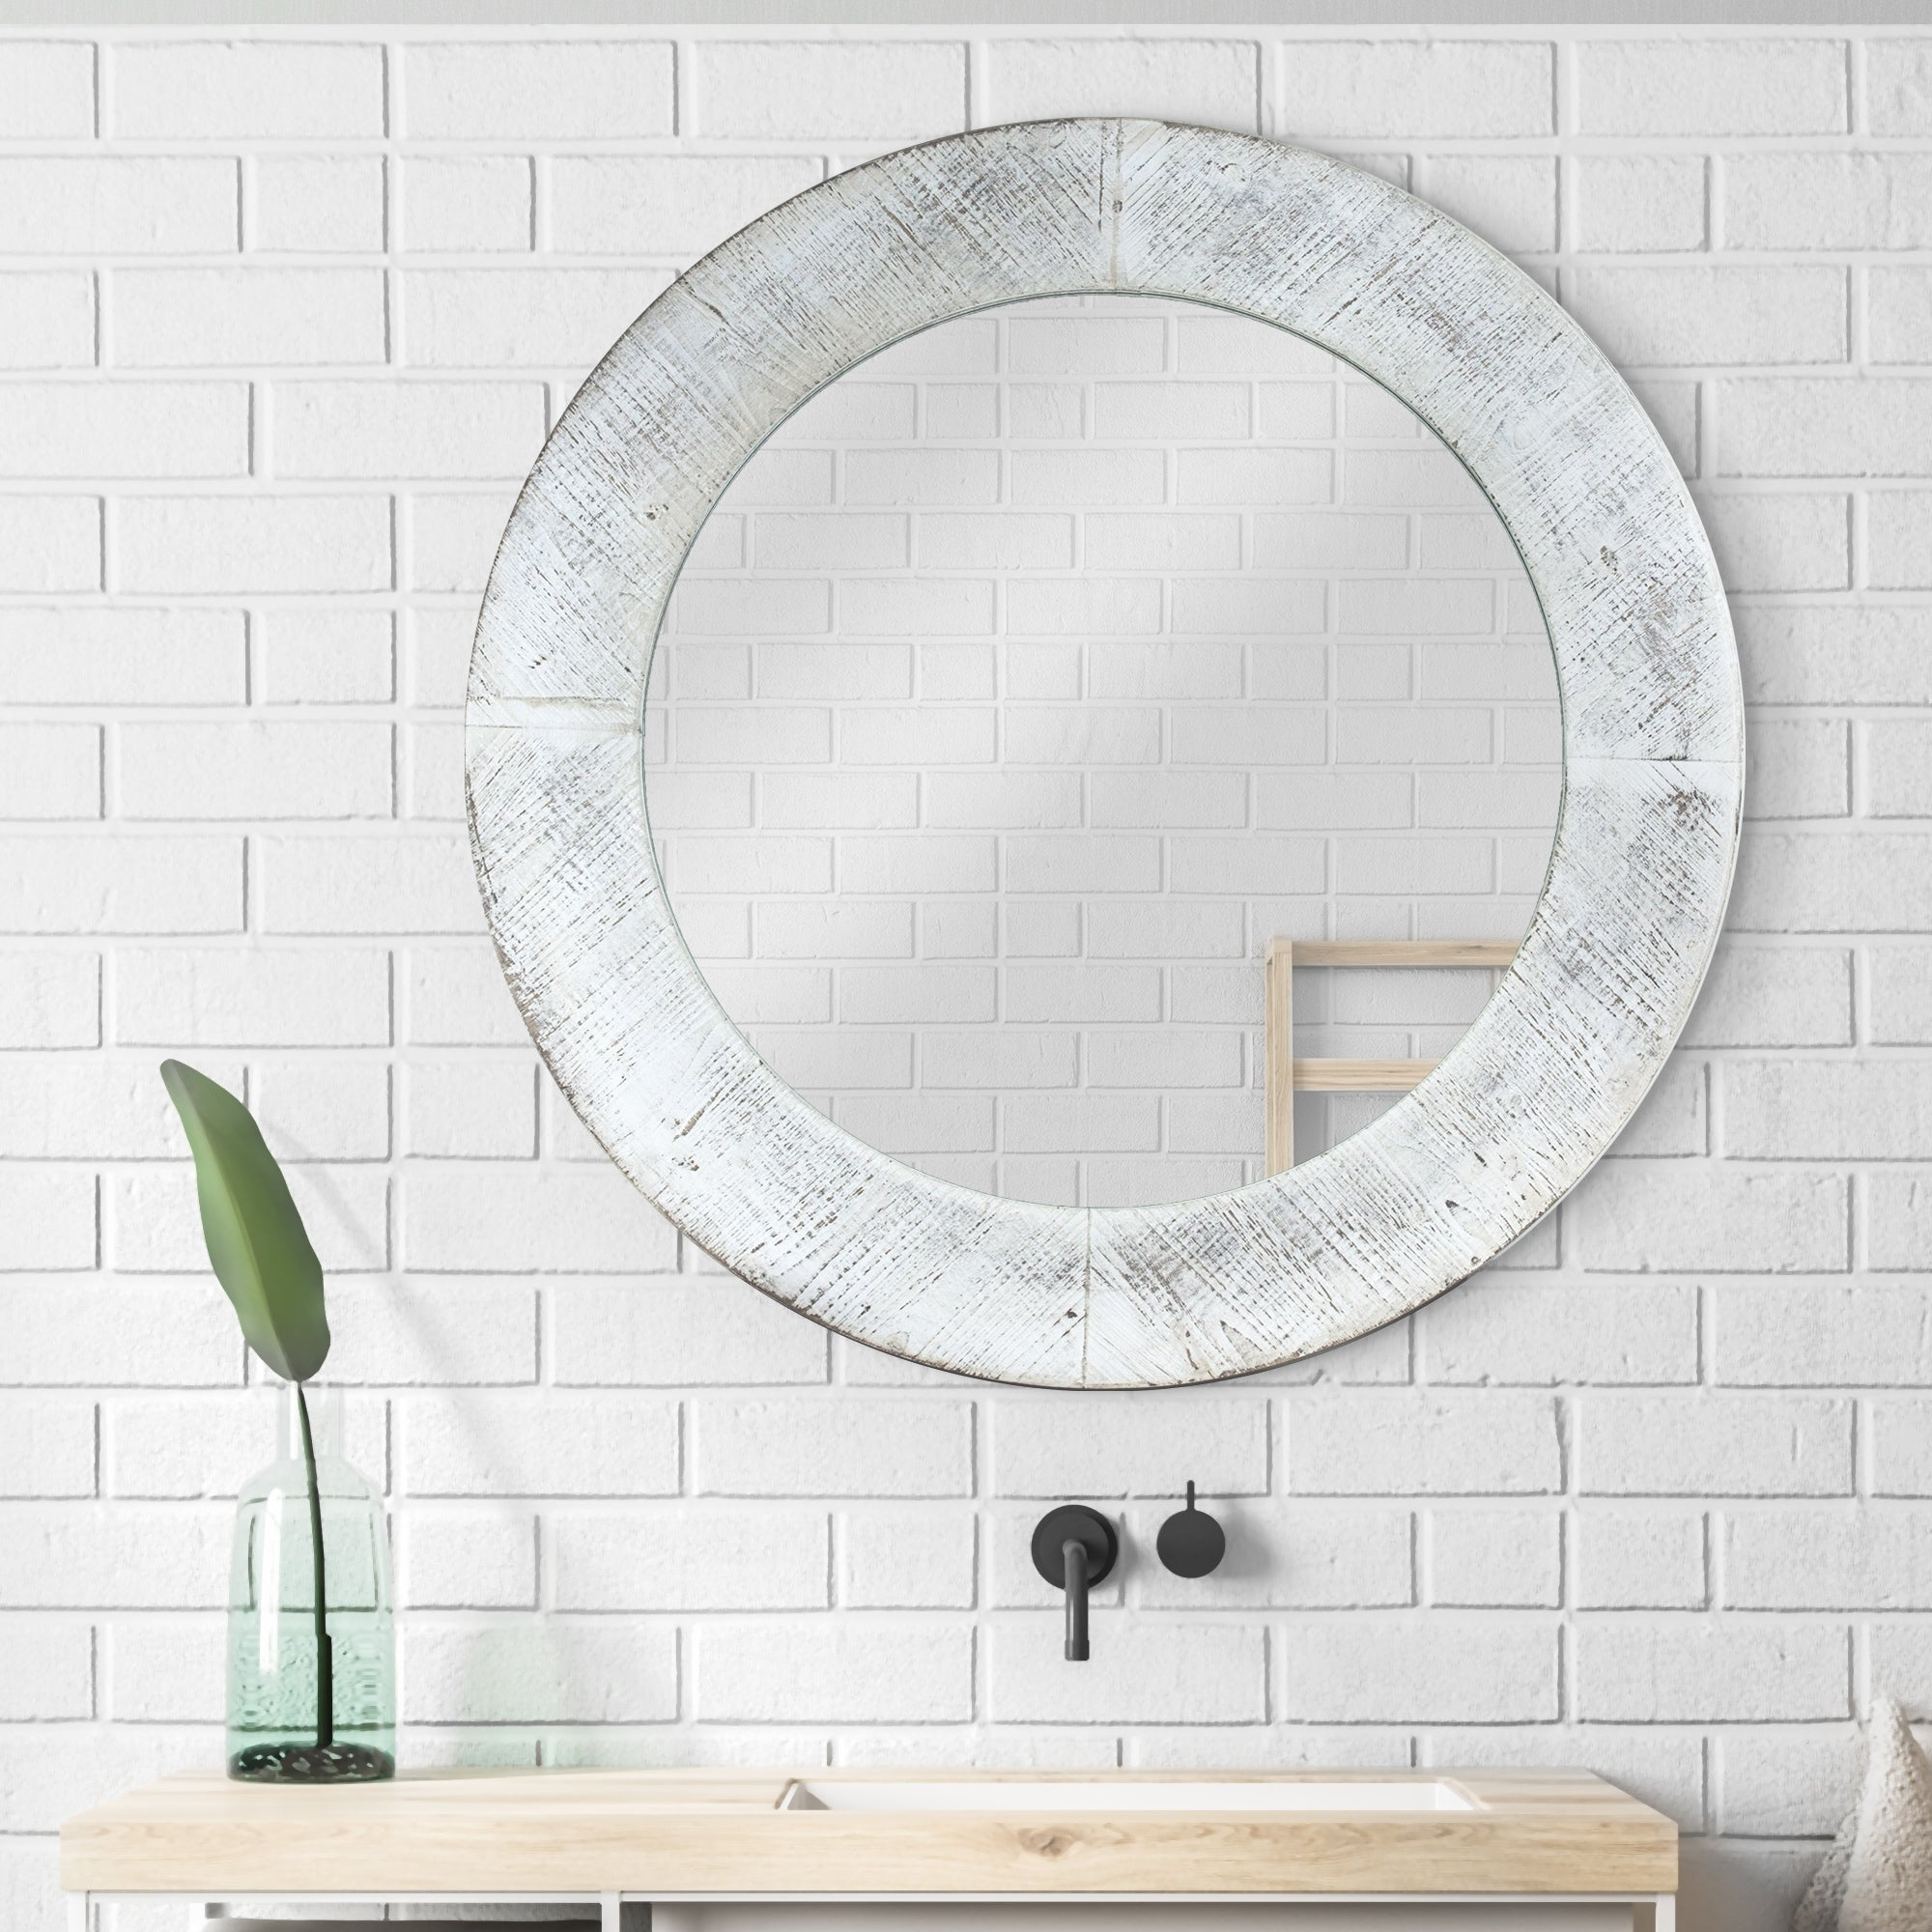 Solid Wood Chalk Paint Distressed Vintage Mirror Oval Wall Mirror Wall Decor Shabby Chic Cottage Chic Mirror Collection Farmhouse Decor Wall Accents Mirrors Home Kitchen